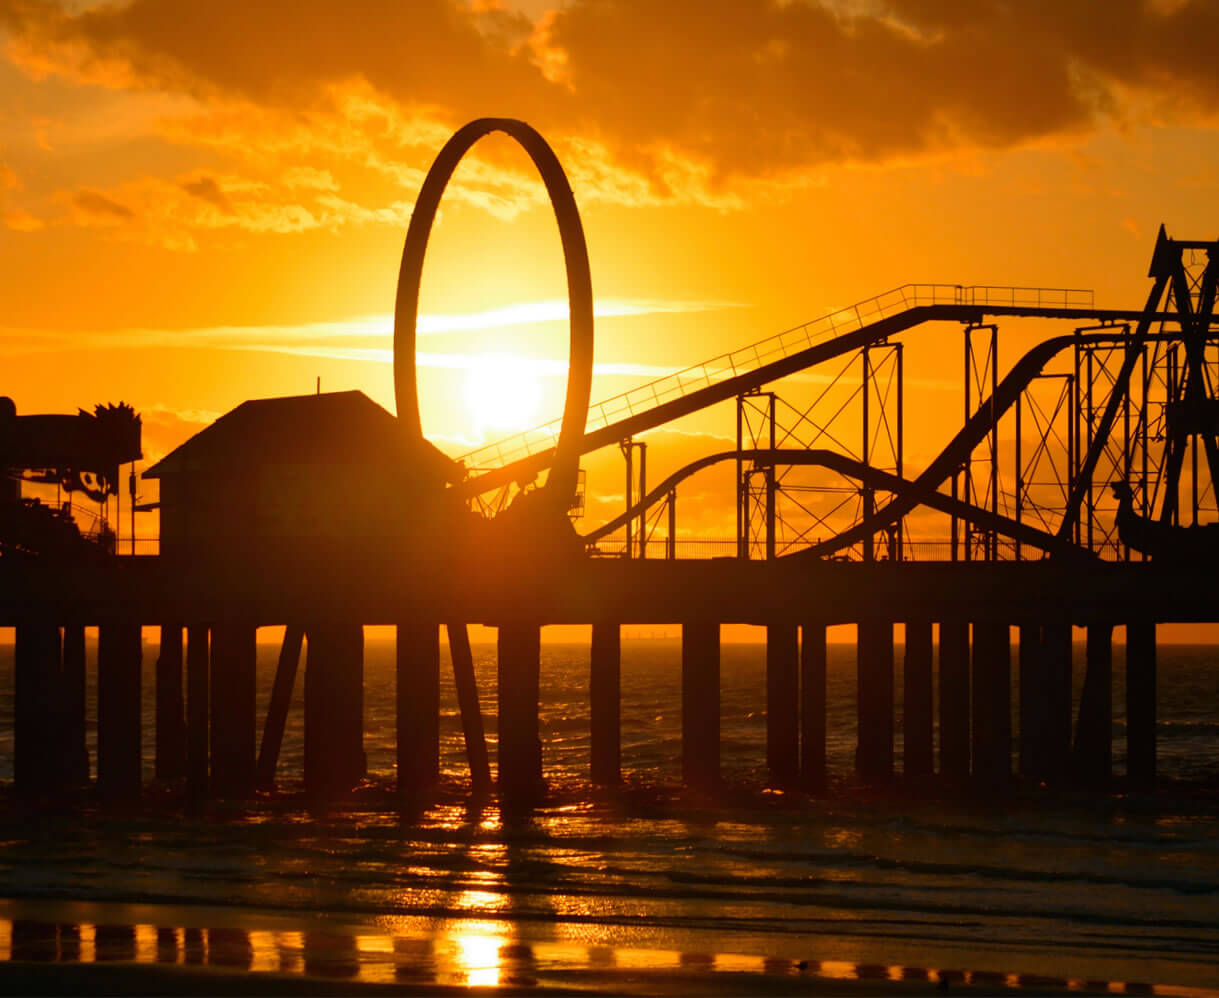 Picture of pleasure pier at sunset.